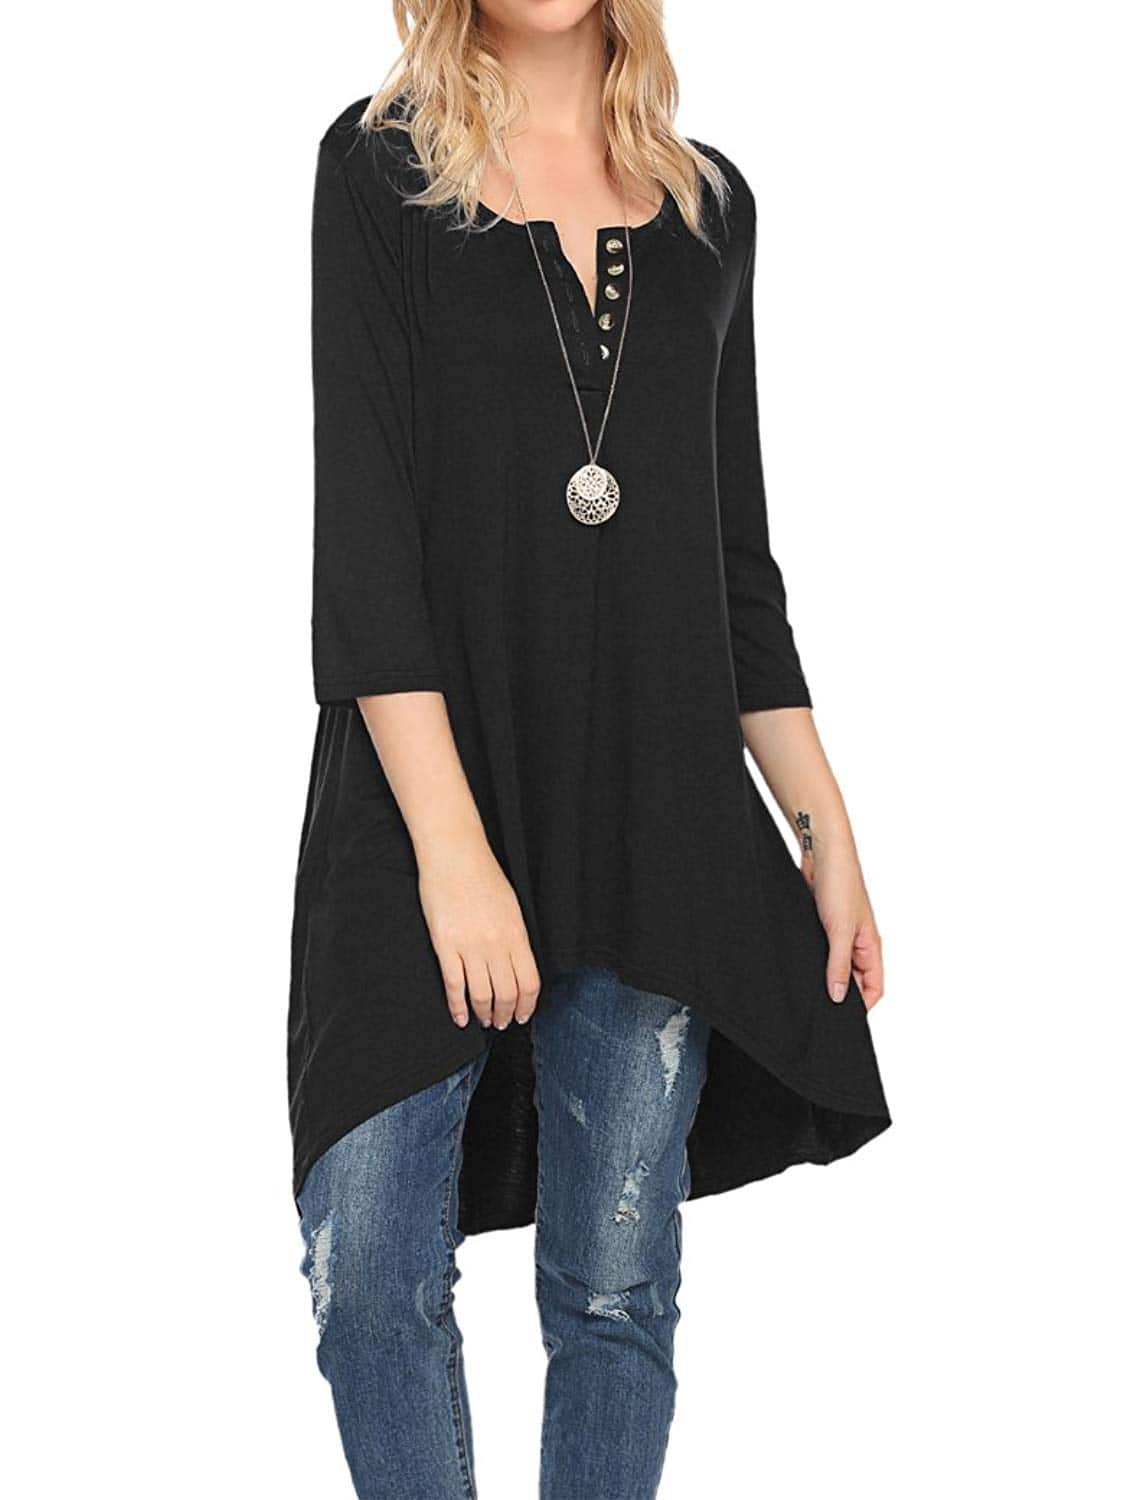 Naggoo Women's Half Sleeve High Low Loose Fit Casual Tunic Tops Tee Shirt Dress $13.63